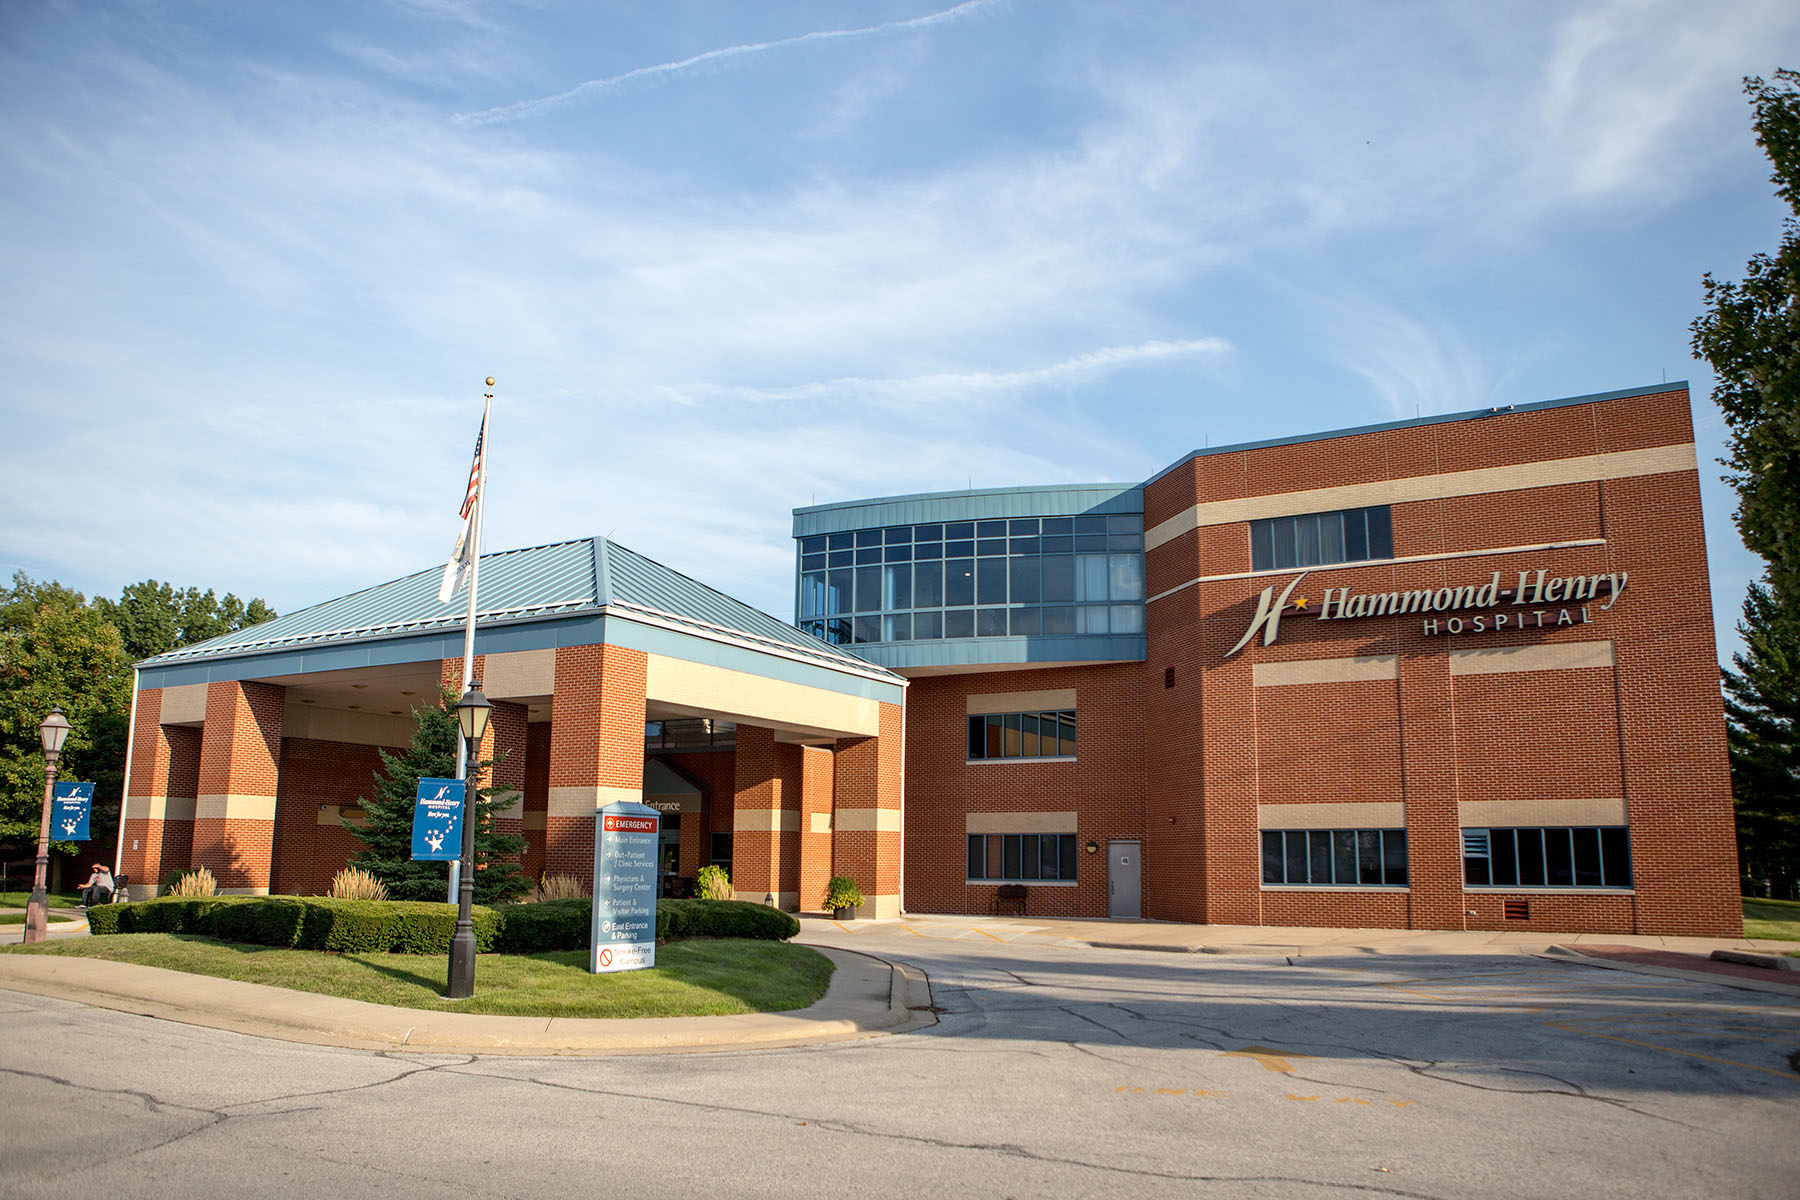 The Hammond-Henry Hospital has provided care to Geneseo and the surrounding communities since 1901. The Geneseo Foundation has been a long time supporter of Hammond Henry Hospital.